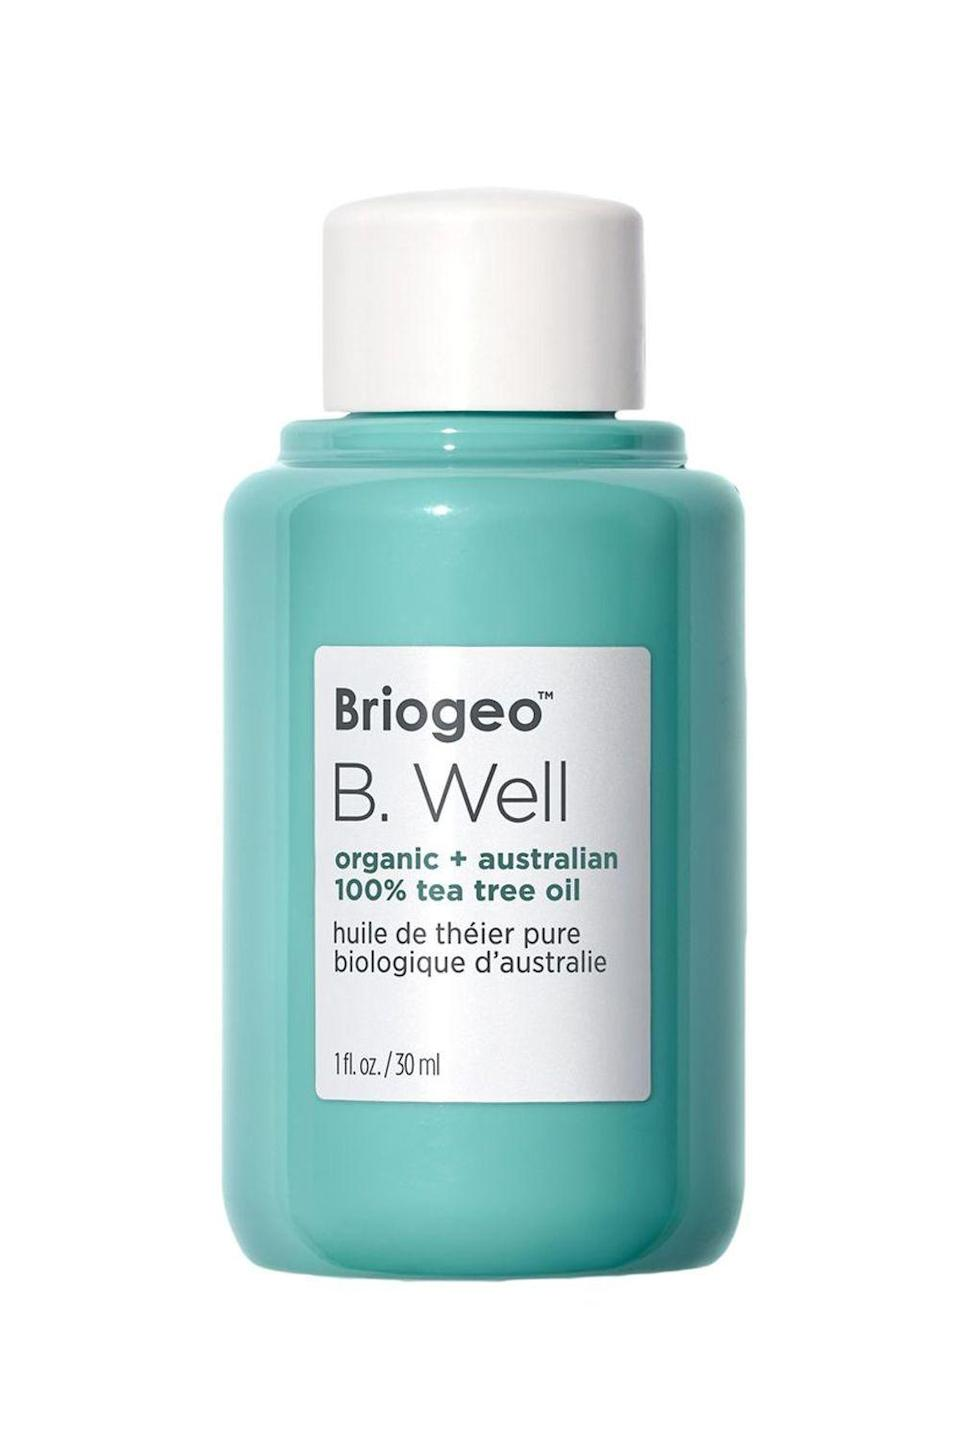 """<p><strong>Briogeo</strong></p><p>sephora.com</p><p><strong>$32.00</strong></p><p><a href=""""https://go.redirectingat.com?id=74968X1596630&url=https%3A%2F%2Fwww.sephora.com%2Fproduct%2Fb-well-organic-australian-100-tea-tree-oil-P440274&sref=https%3A%2F%2Fwww.cosmopolitan.com%2Fstyle-beauty%2Fbeauty%2Fg33473200%2Fbest-organic-hair-products%2F"""" rel=""""nofollow noopener"""" target=""""_blank"""" data-ylk=""""slk:Shop Now"""" class=""""link rapid-noclick-resp"""">Shop Now</a></p><p>The hero ingredient in this organic scalp treatment? 100 percent pure tea tree leaf oil from Australia, which is <strong>prized for its antimicrobial and anti-inflammatory properties</strong>. Dilute it with a carrier oil (like coconut oil or jojoba oil) and massage it into your scalp or add a few drops to your favorite <a href=""""https://www.cosmopolitan.com/style-beauty/beauty/g2149/best-shampoo-conditioner/"""" rel=""""nofollow noopener"""" target=""""_blank"""" data-ylk=""""slk:shampoo and/or conditioner"""" class=""""link rapid-noclick-resp"""">shampoo and/or conditioner</a> to get rid of itchiness, dryness, and flakes.</p>"""